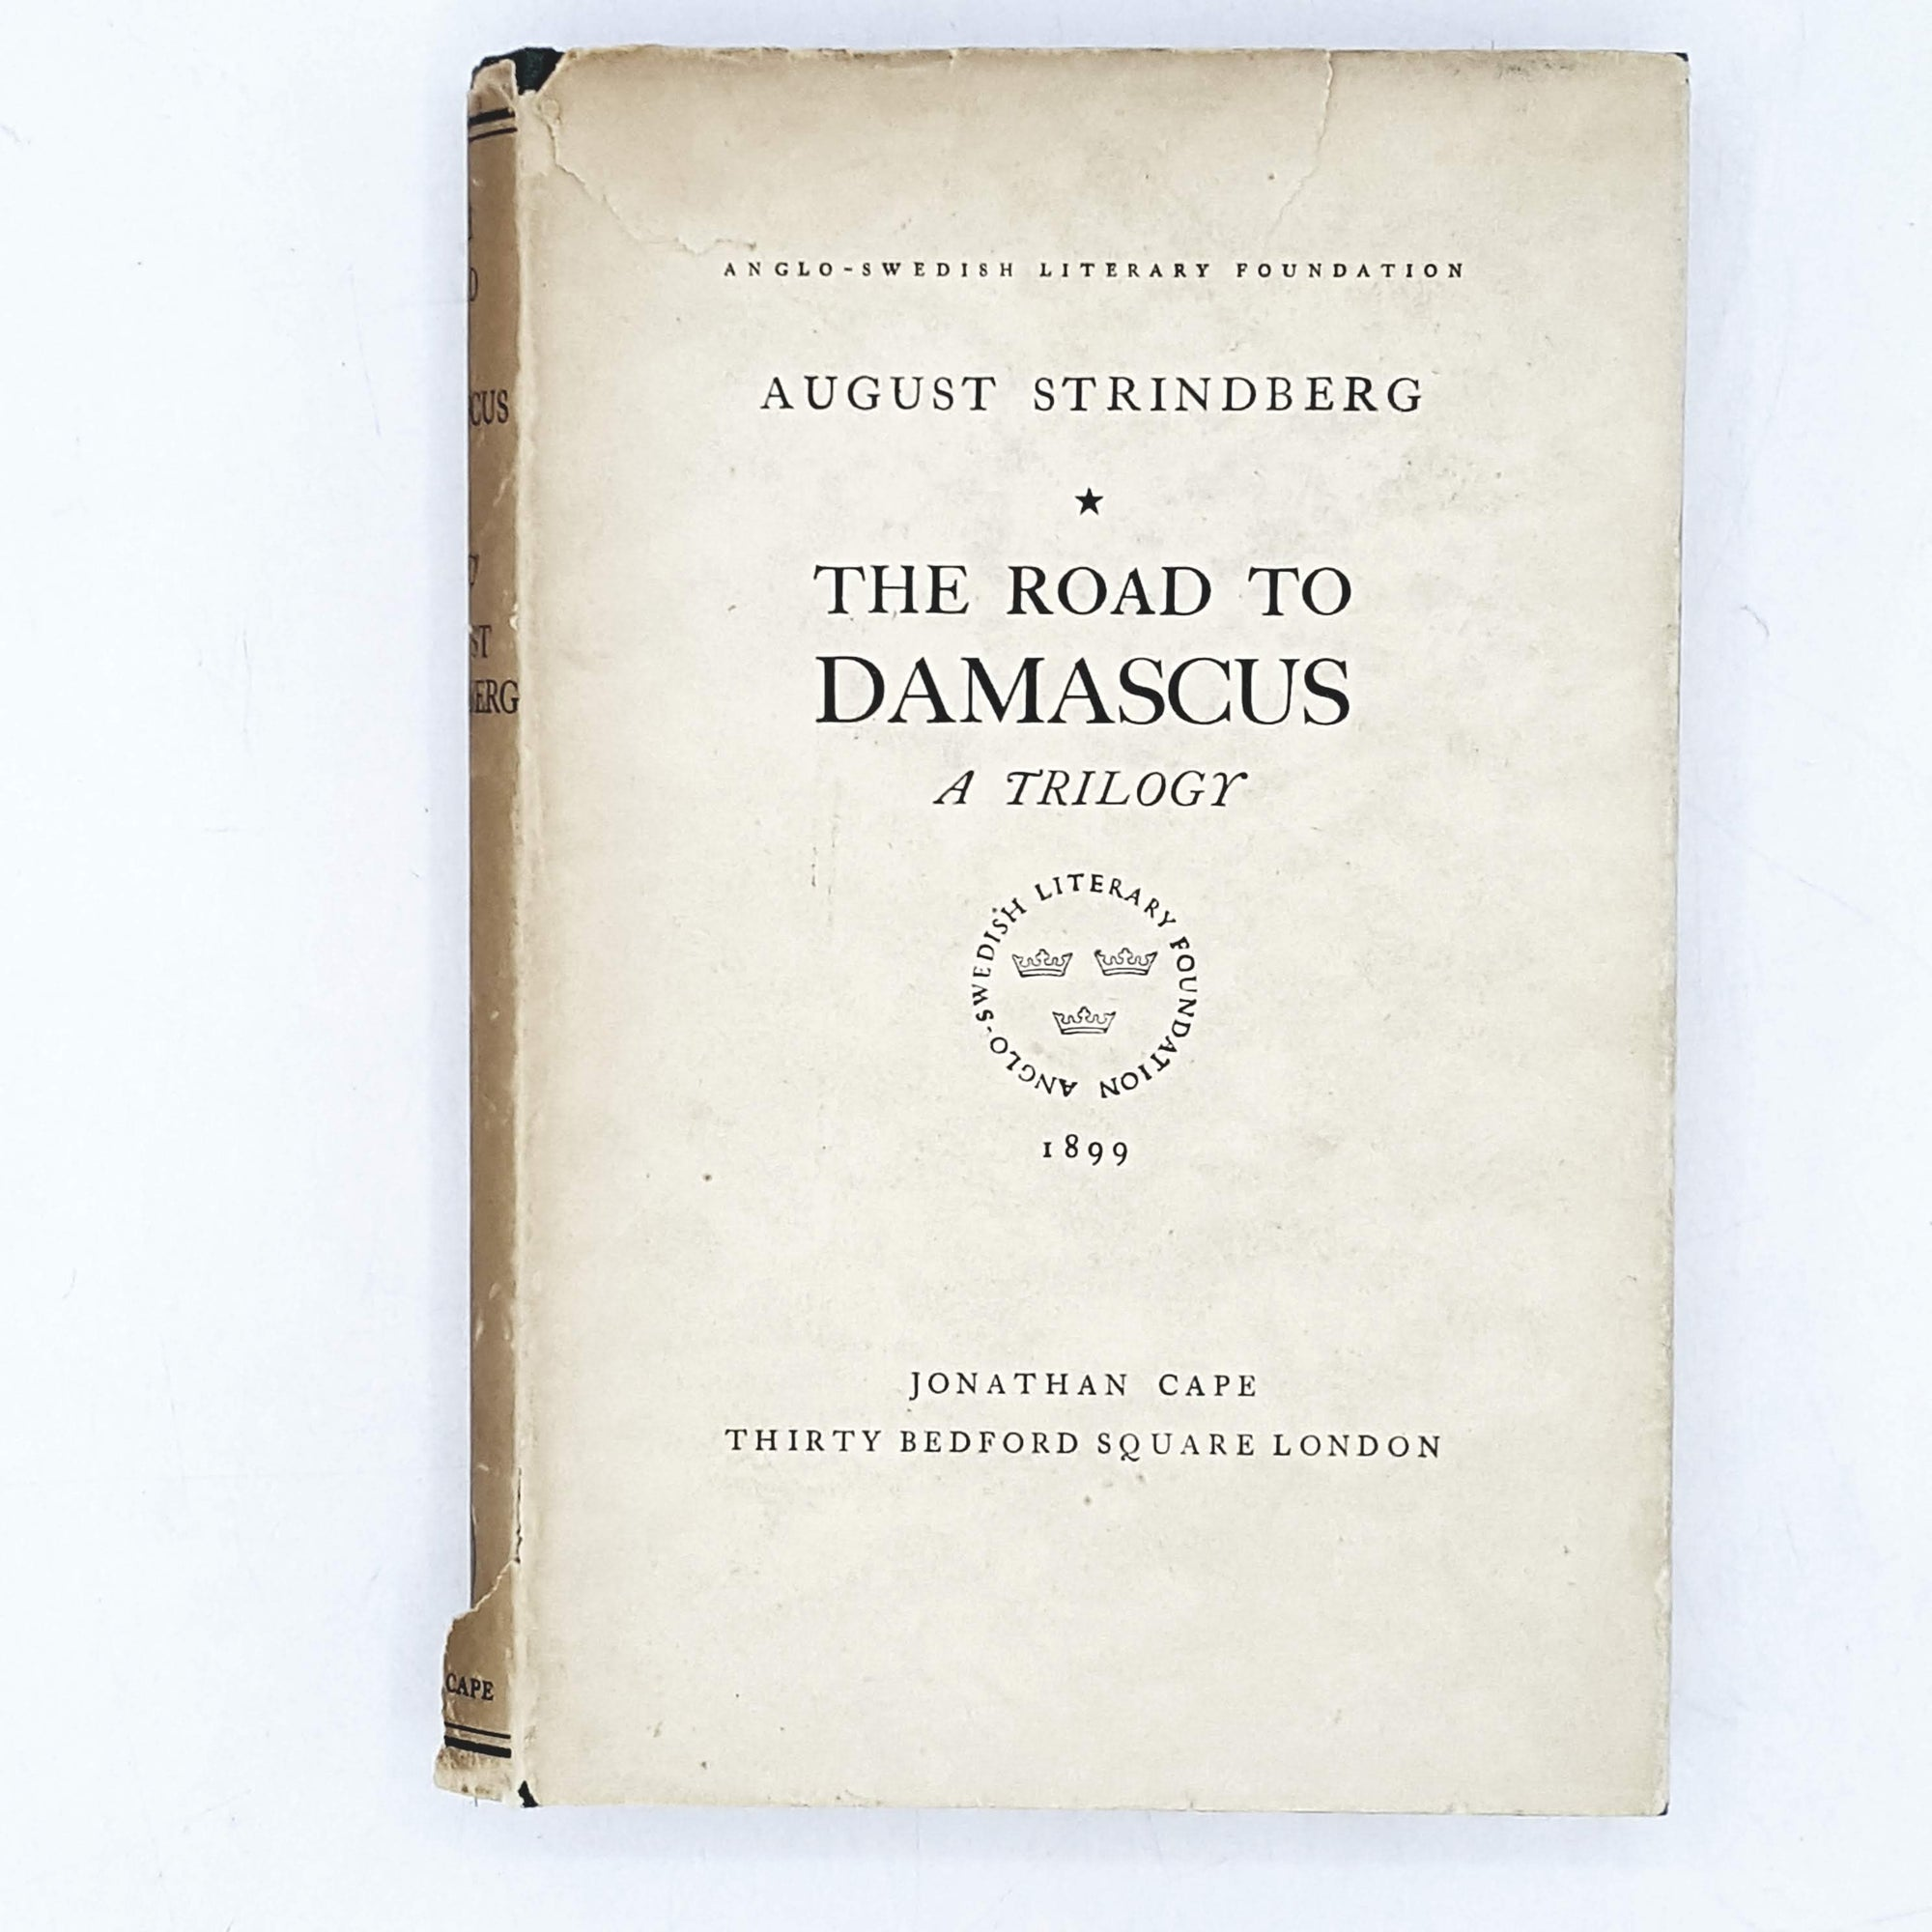 The Road to Damascus by August Strindberg 1939